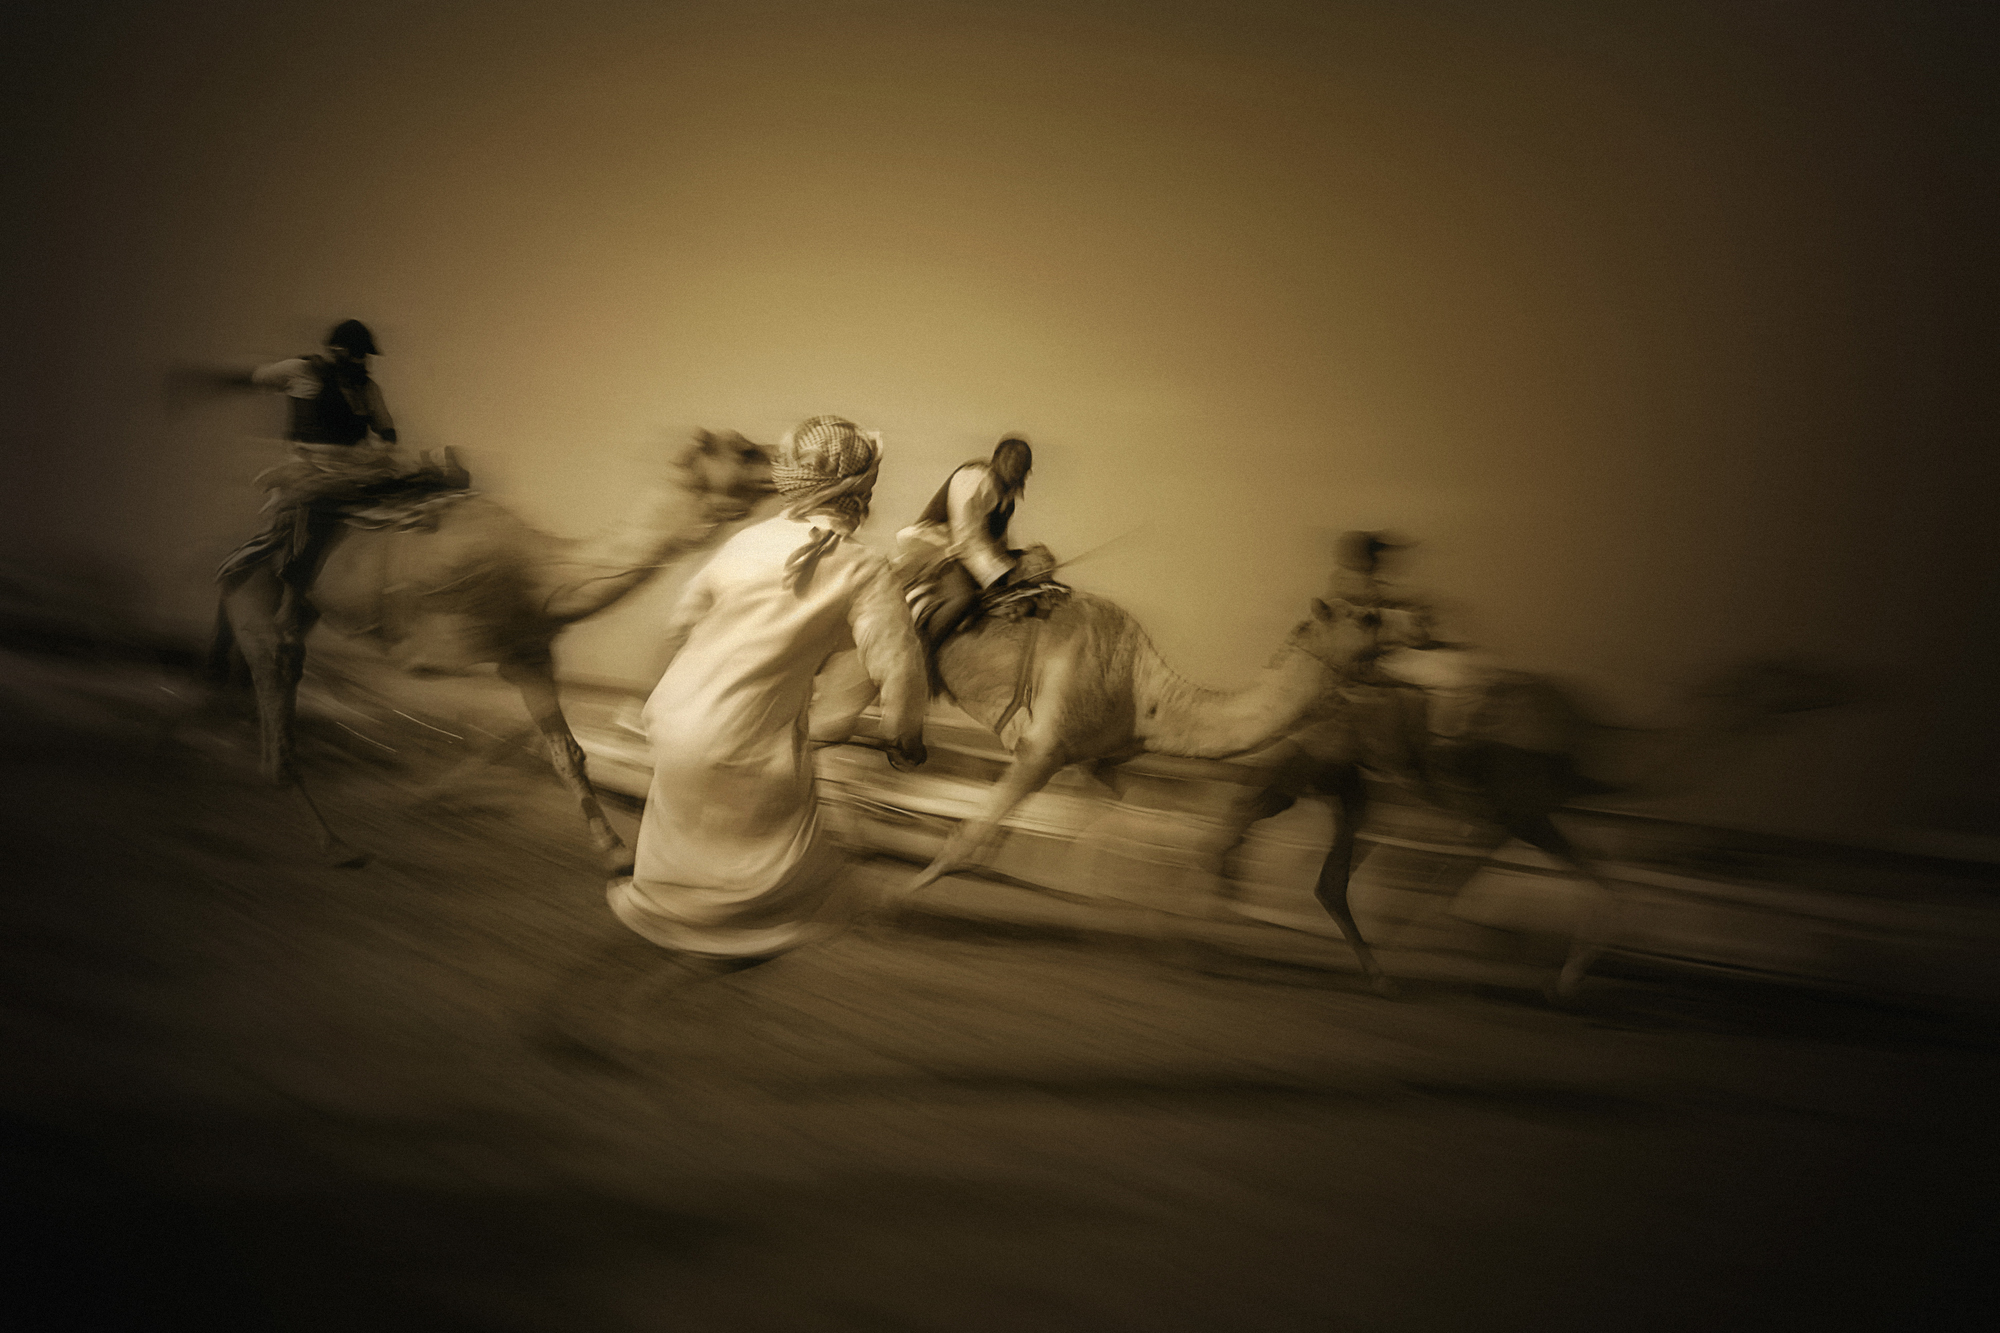 Taken during Al Dafra Camel Festival, Western Region, Abu Dhabi, United Arab Emirates